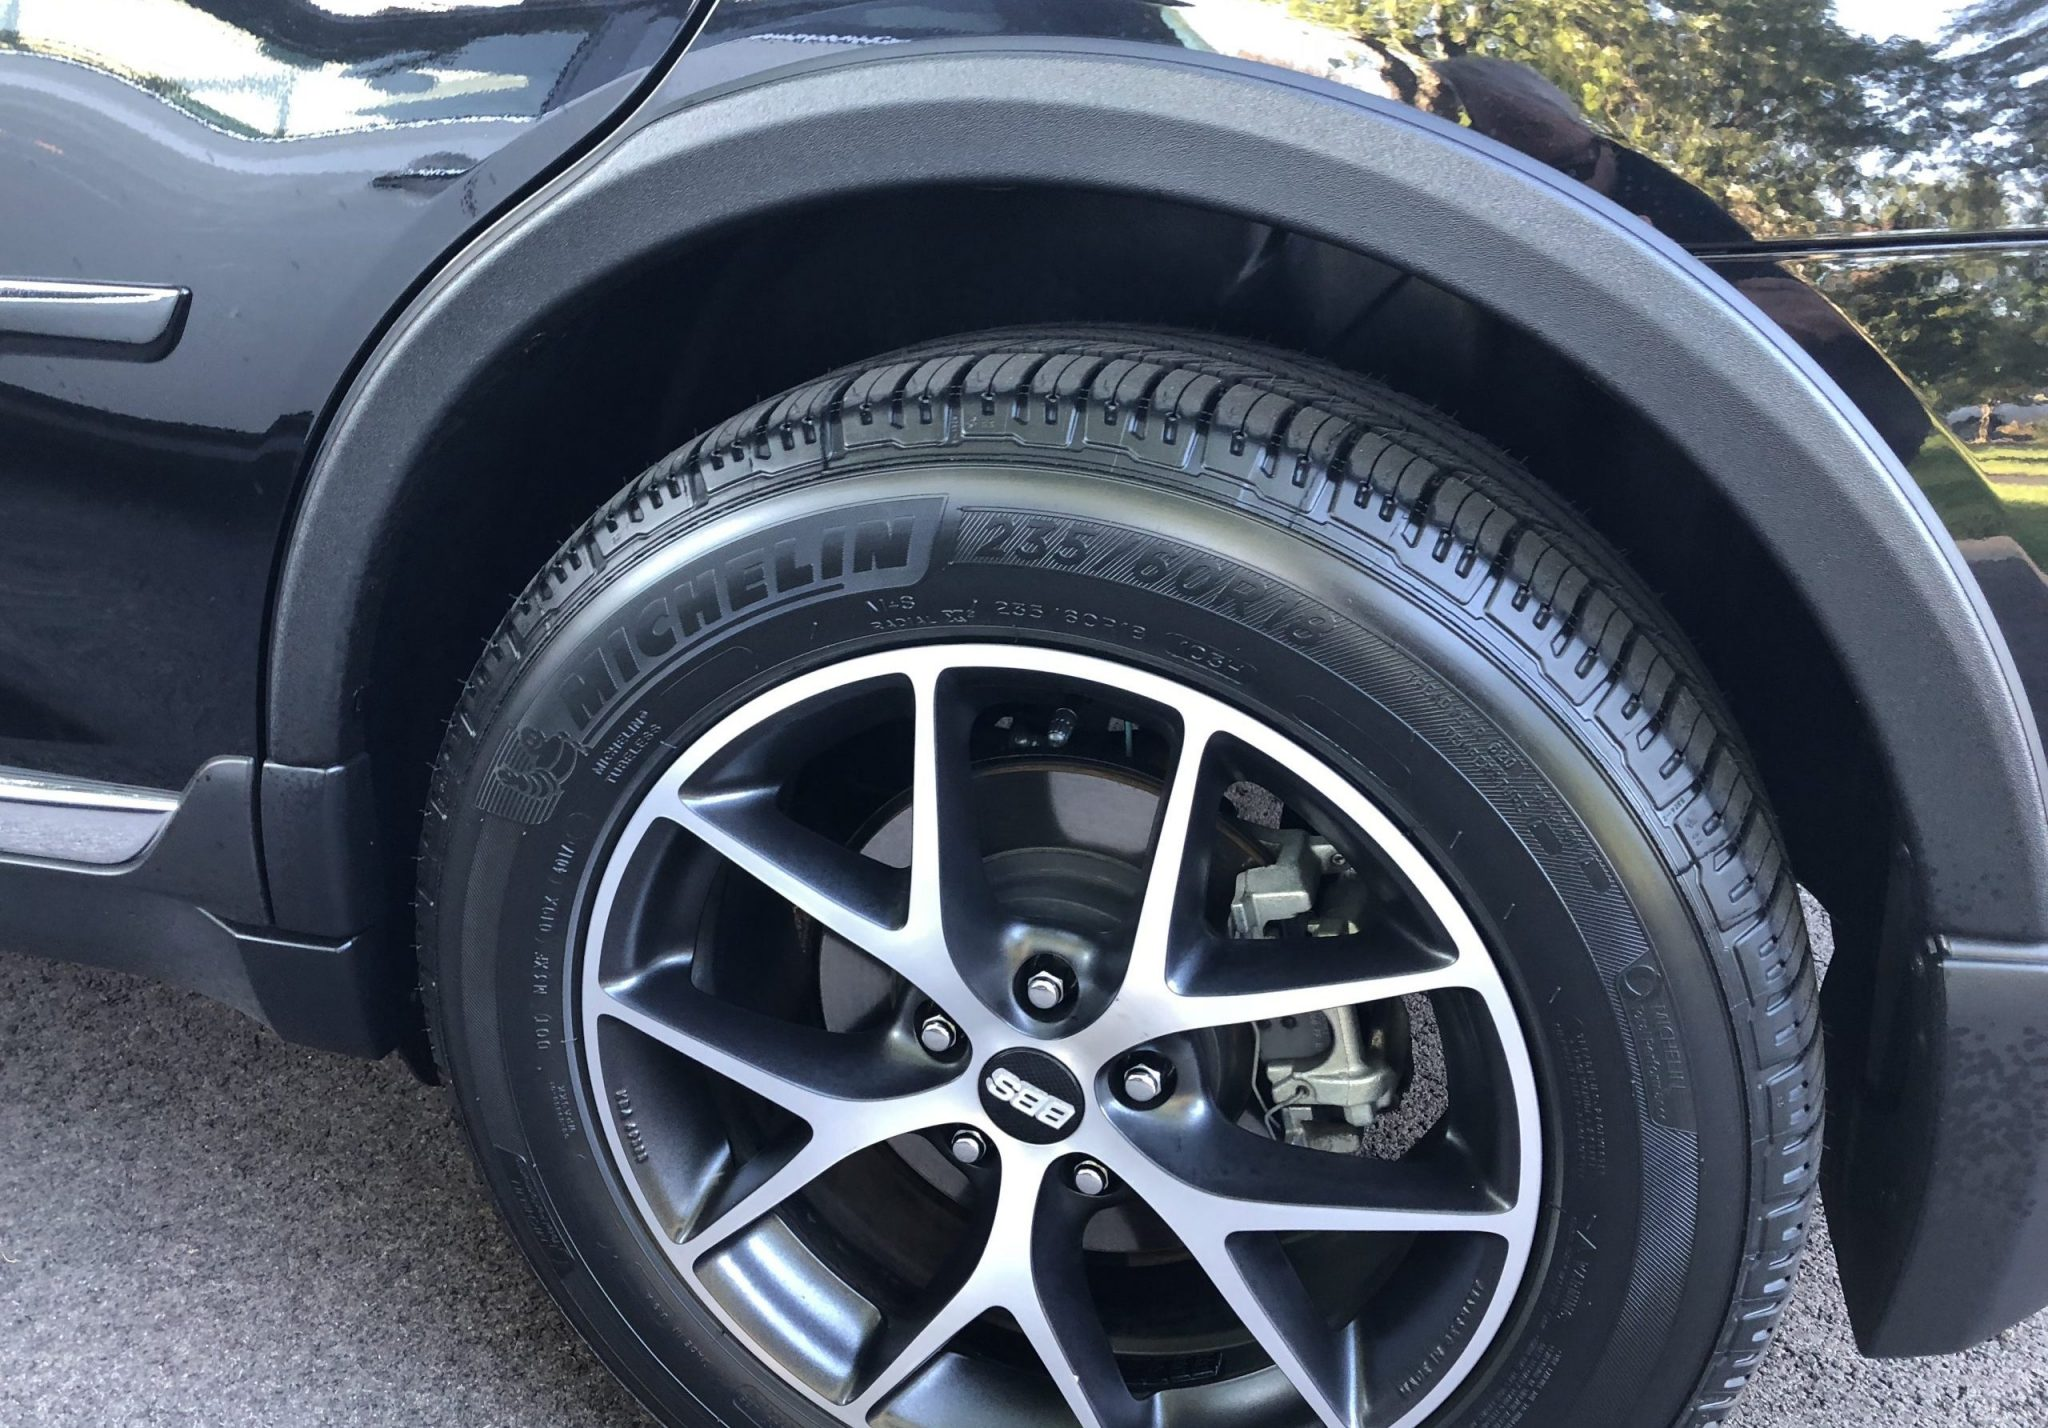 Best Tires for Subaru Outback – A Review & Buying Guide